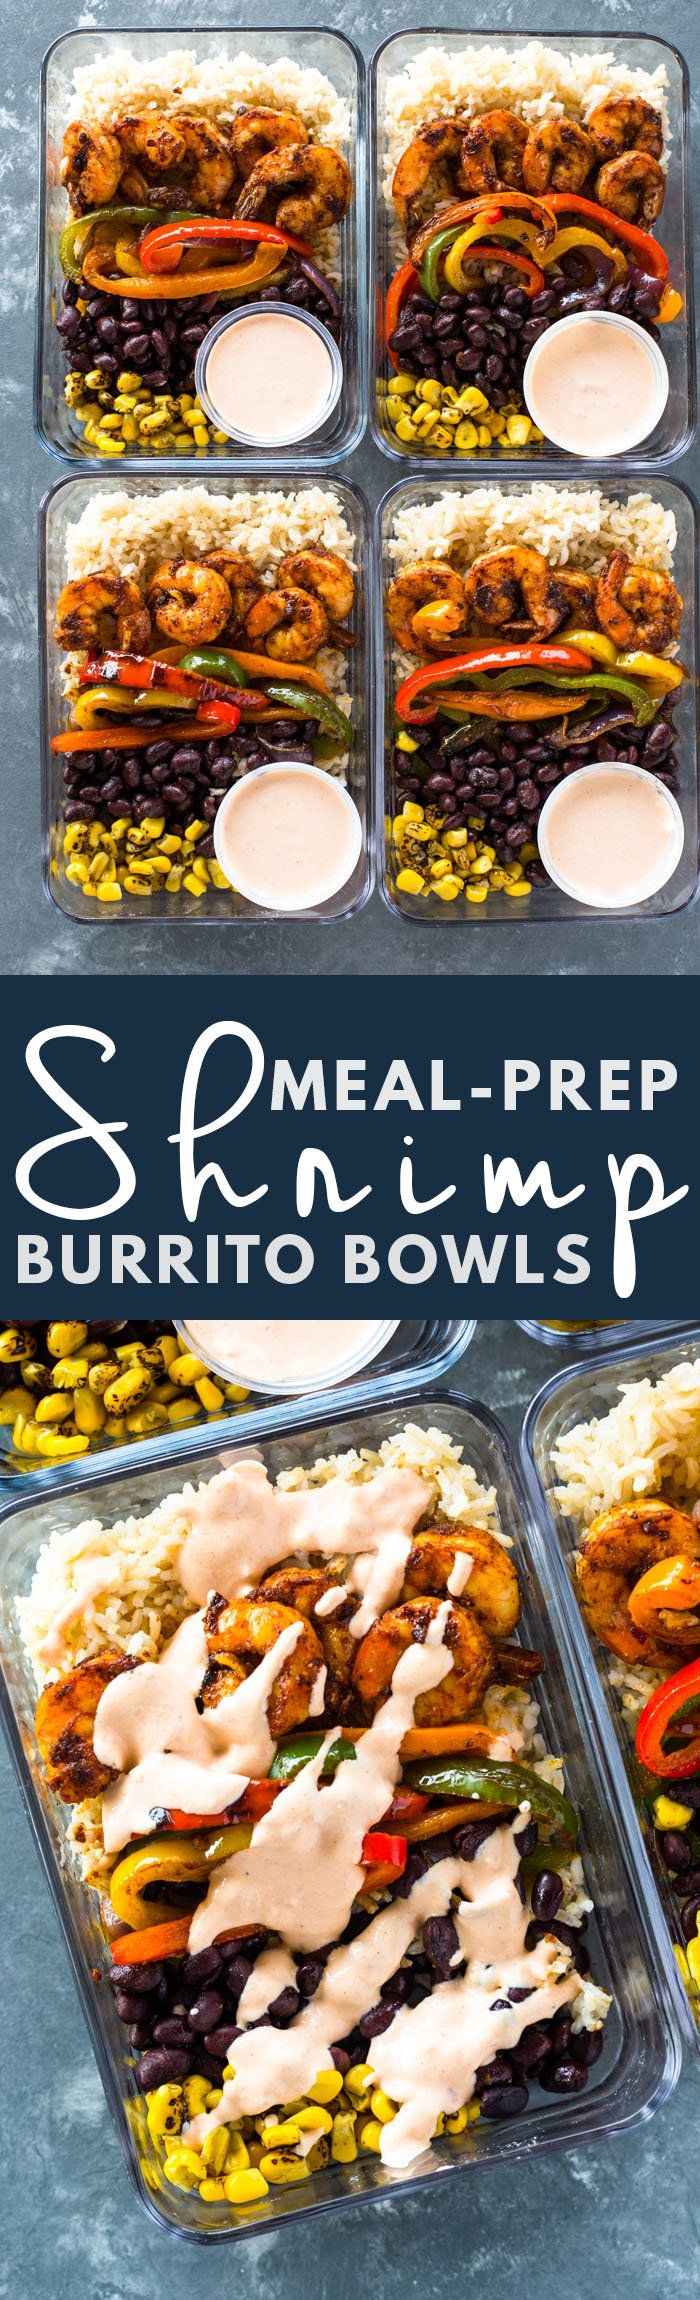 "Meal-Prep ""Minus"" the Shrimp (maybe add Potatoes to make it vegan) Burrito Bowls"